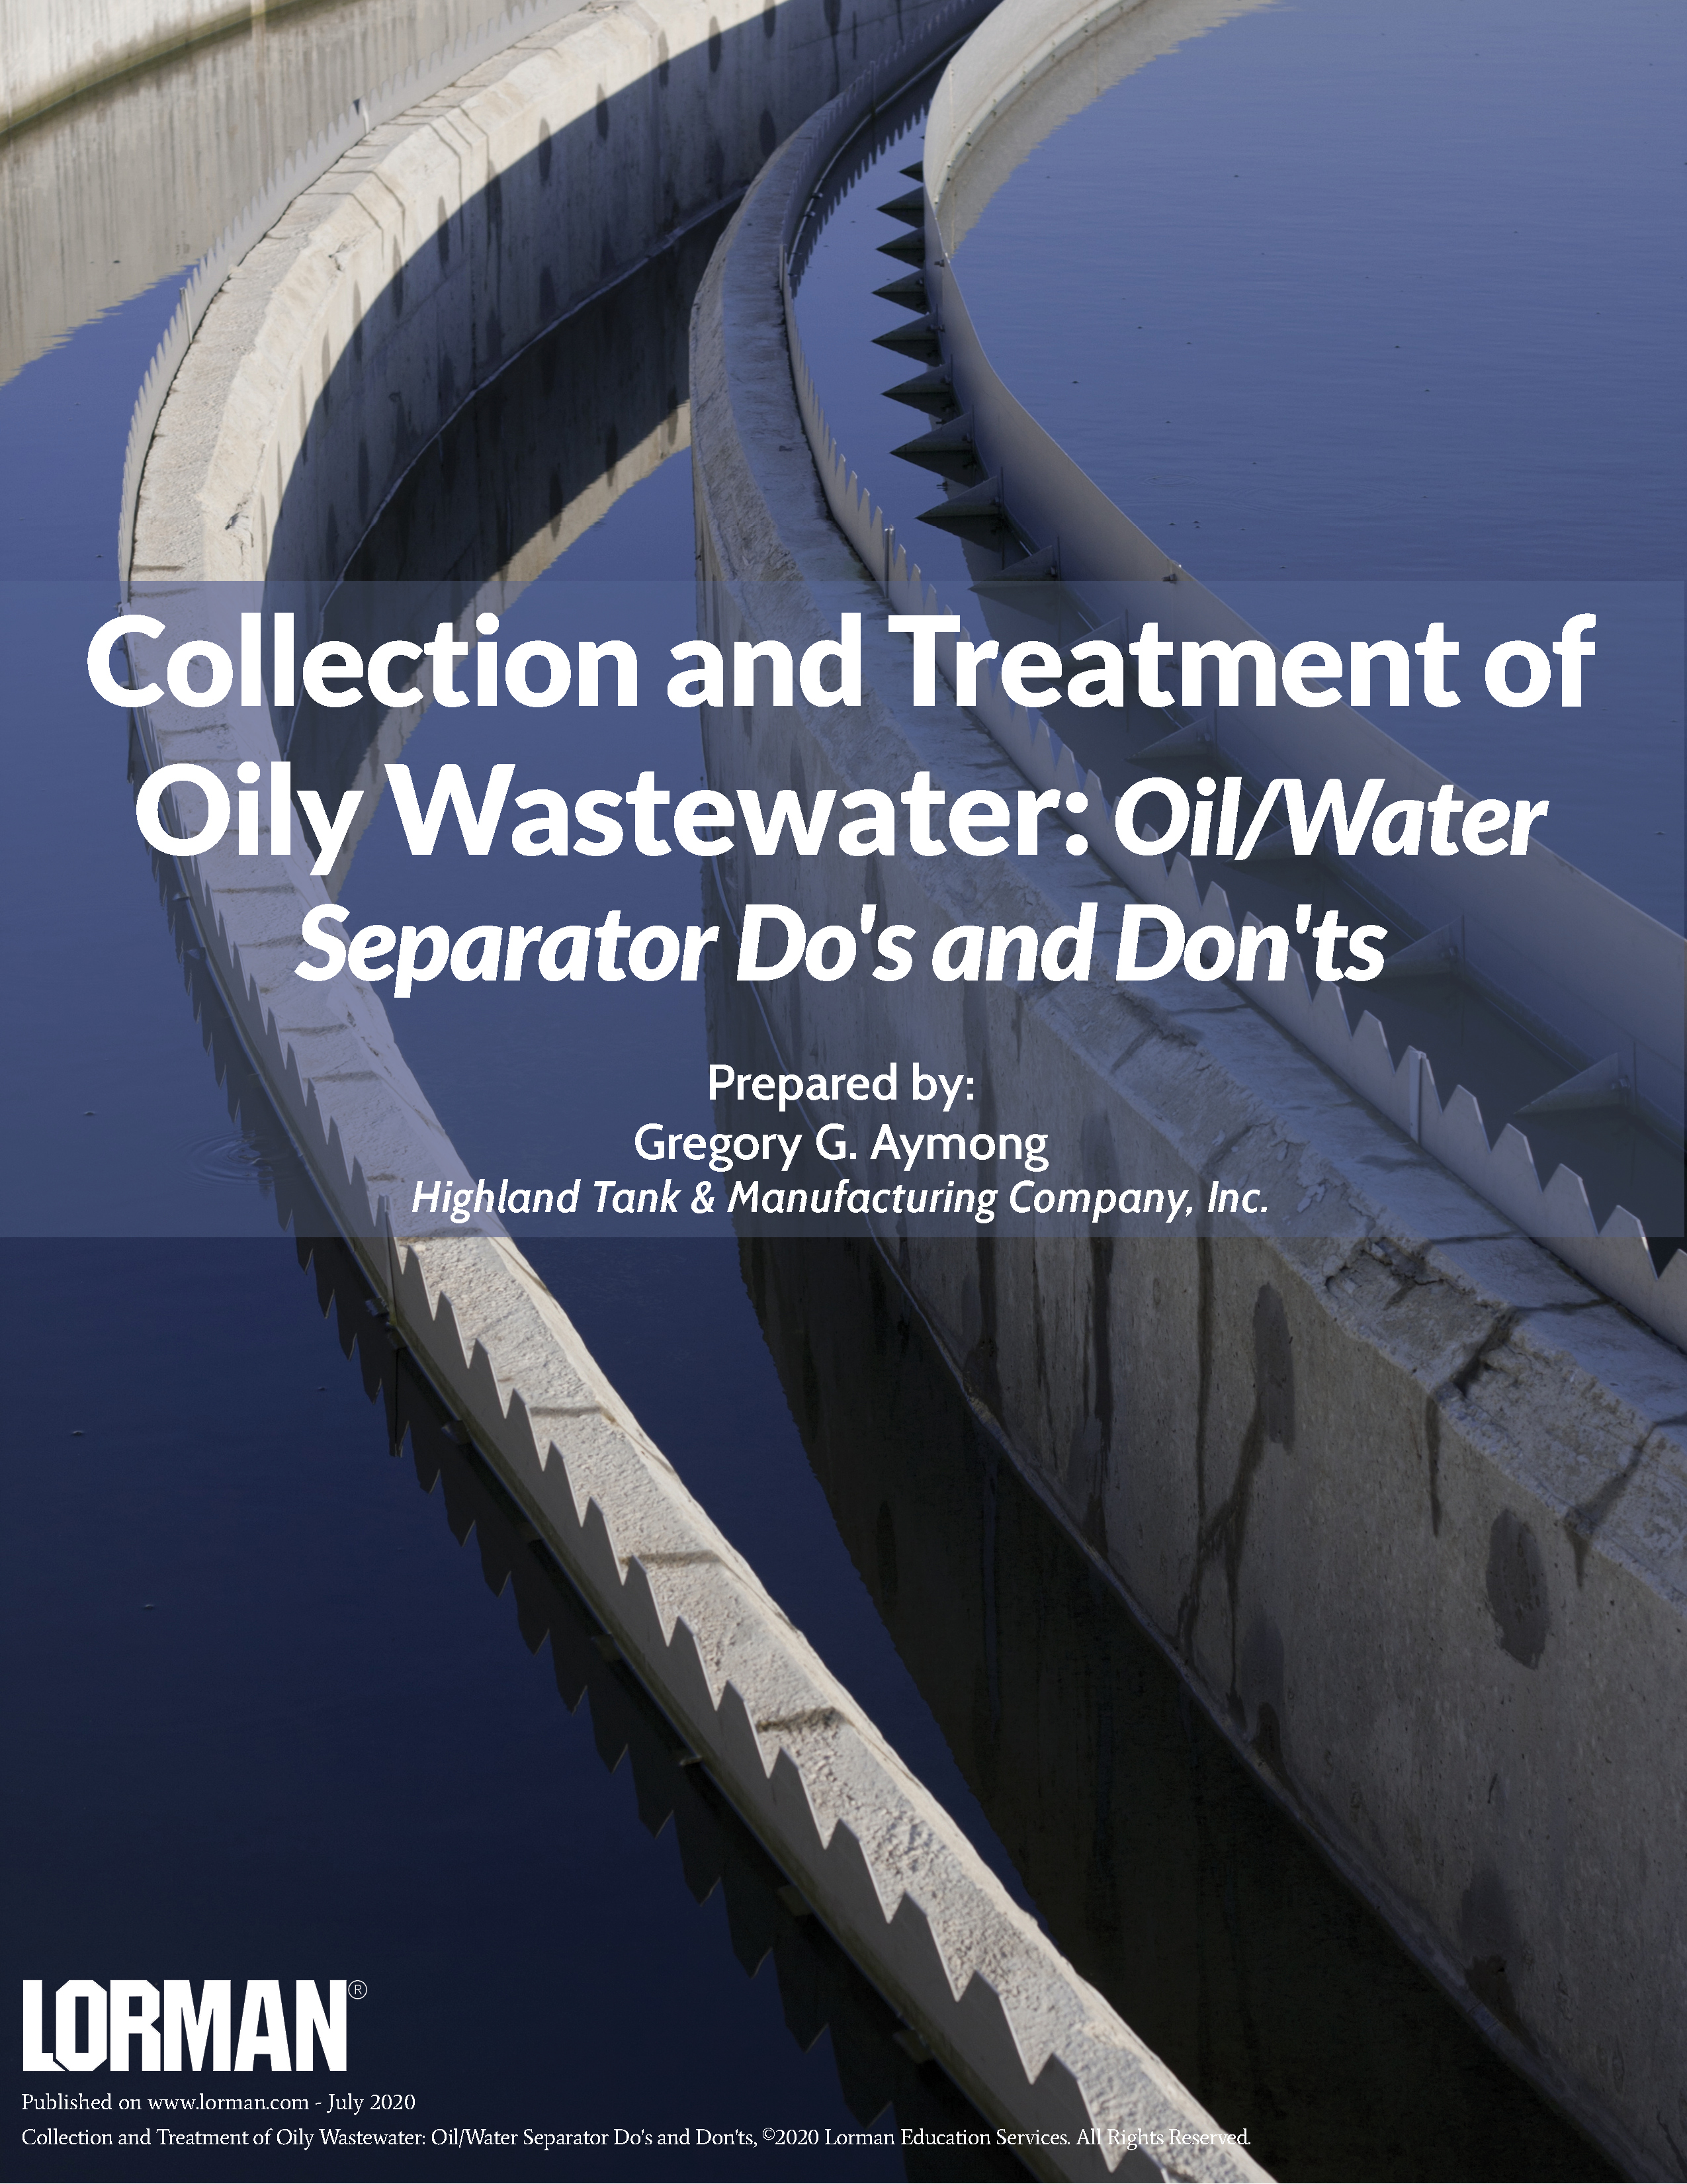 Collection and Treatment of Oily Wastewater: Oil/Water Separator Do's and Don'ts